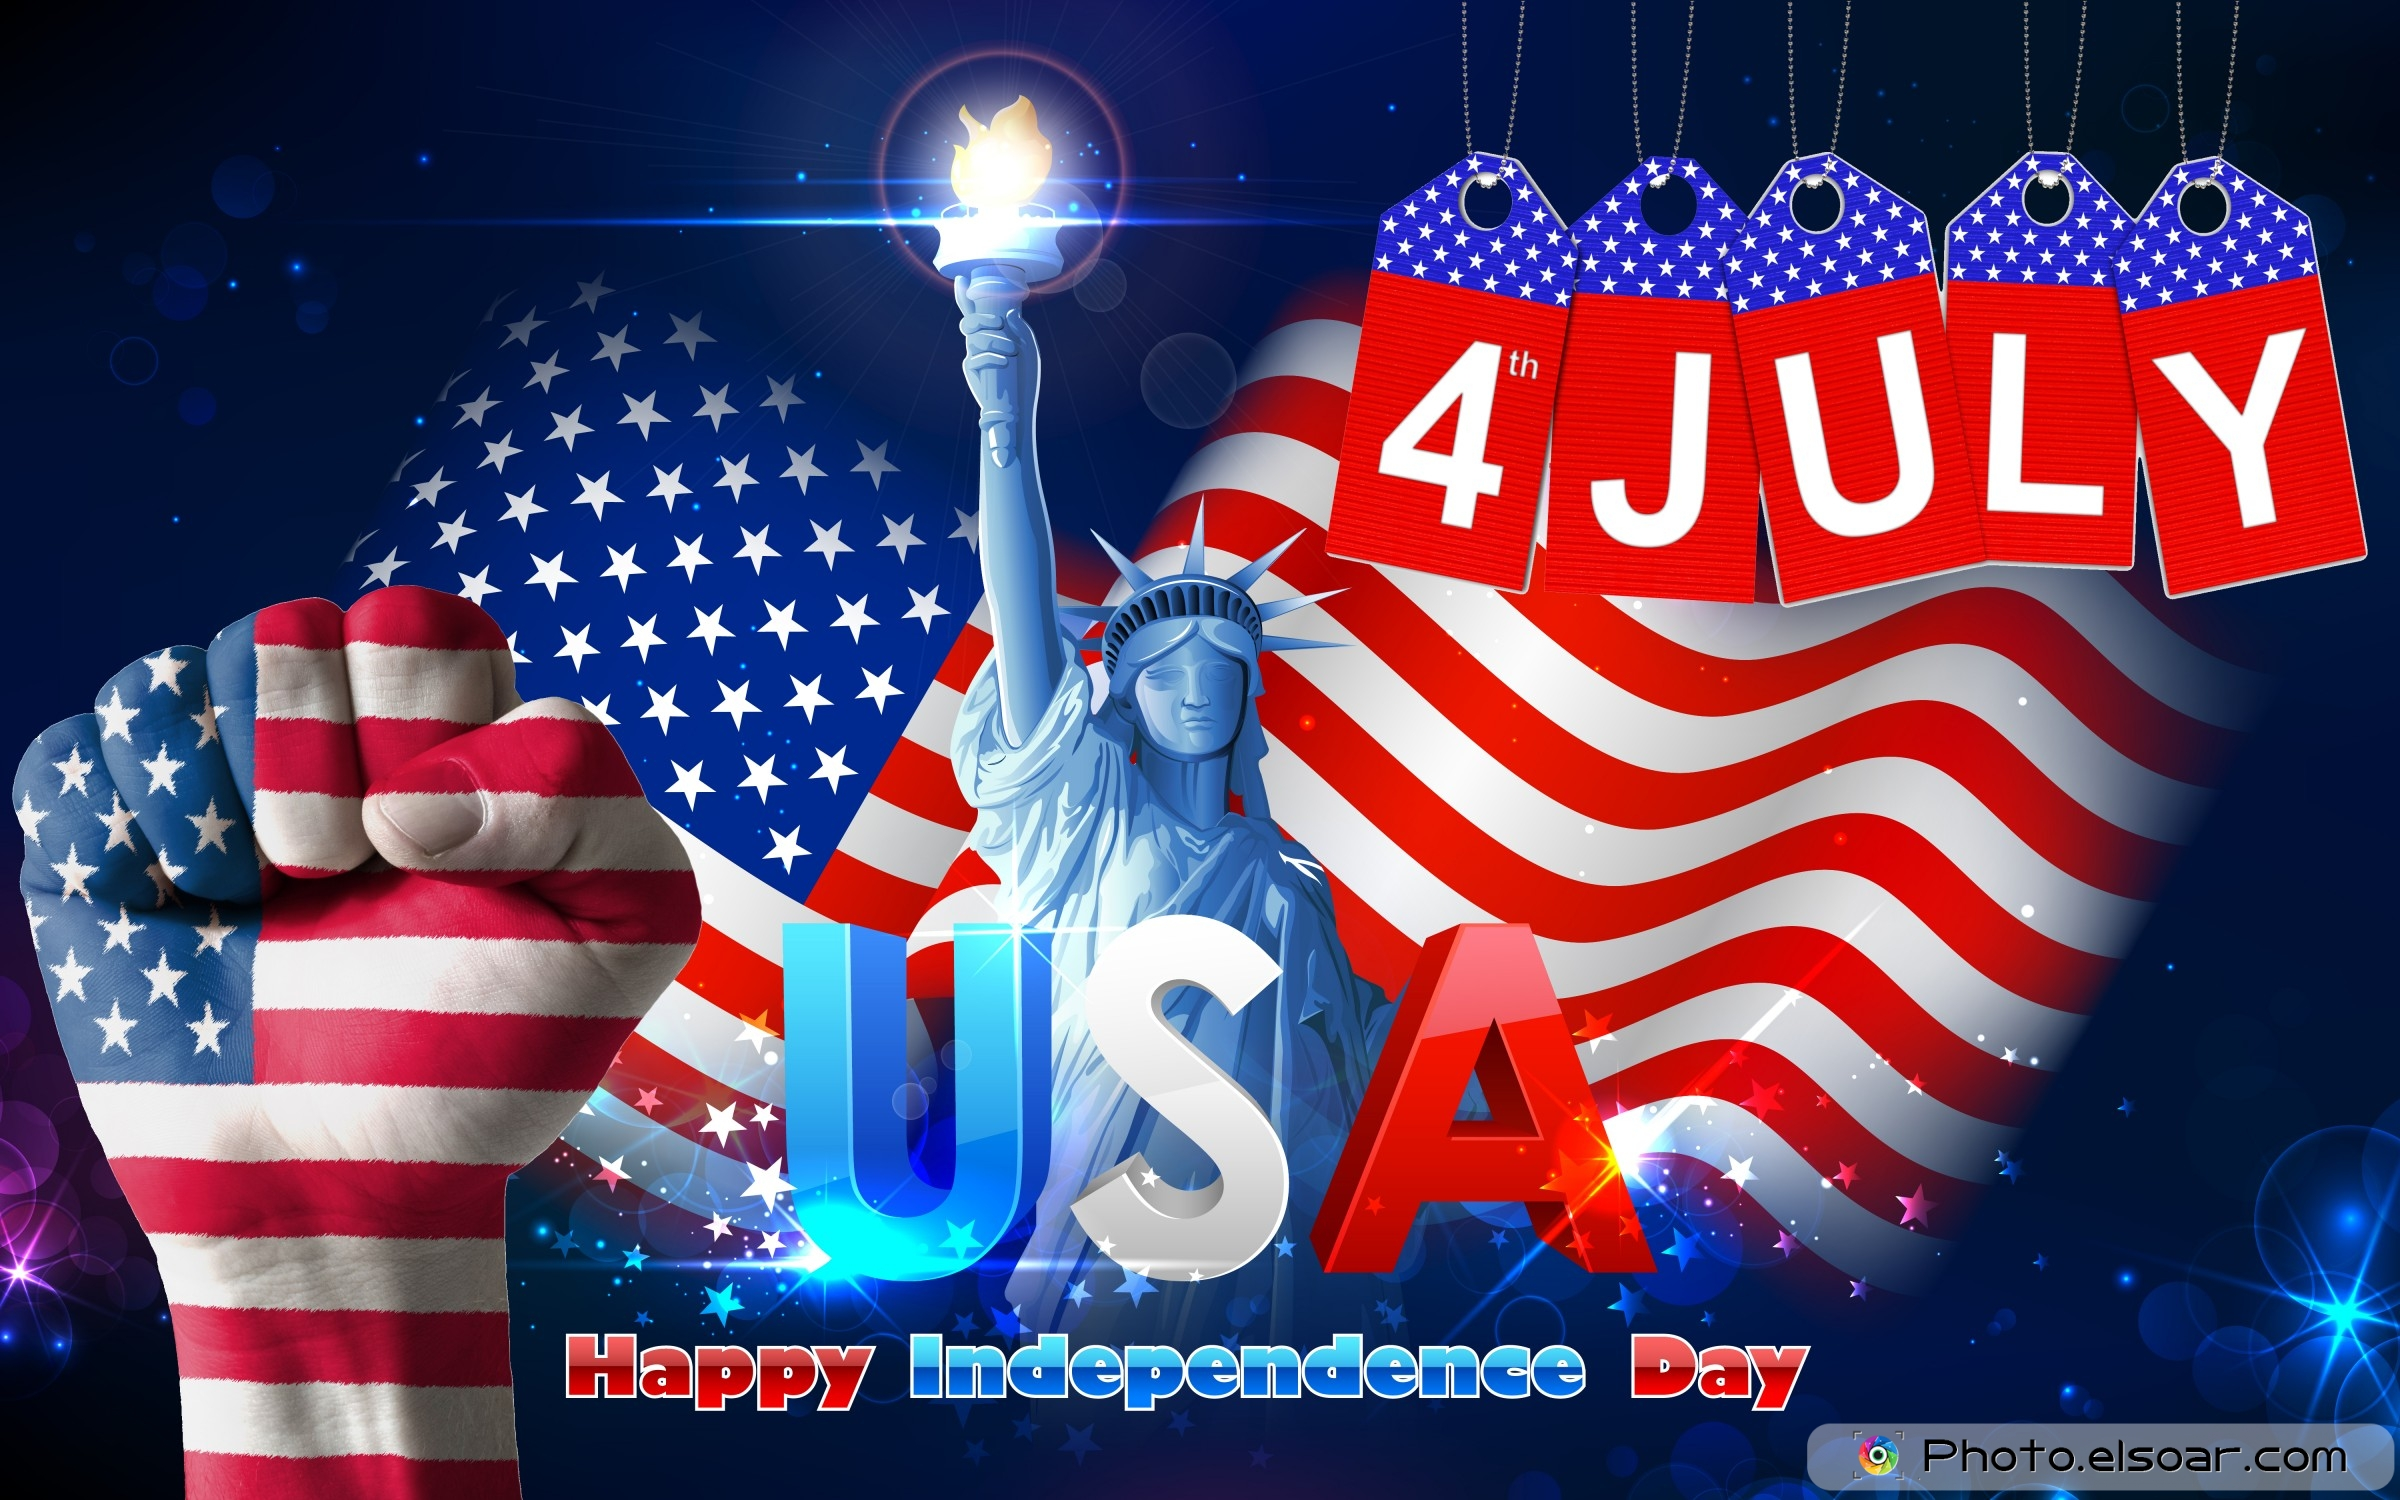 4th of july hd wallpapers – happy usa independence day • elsoar